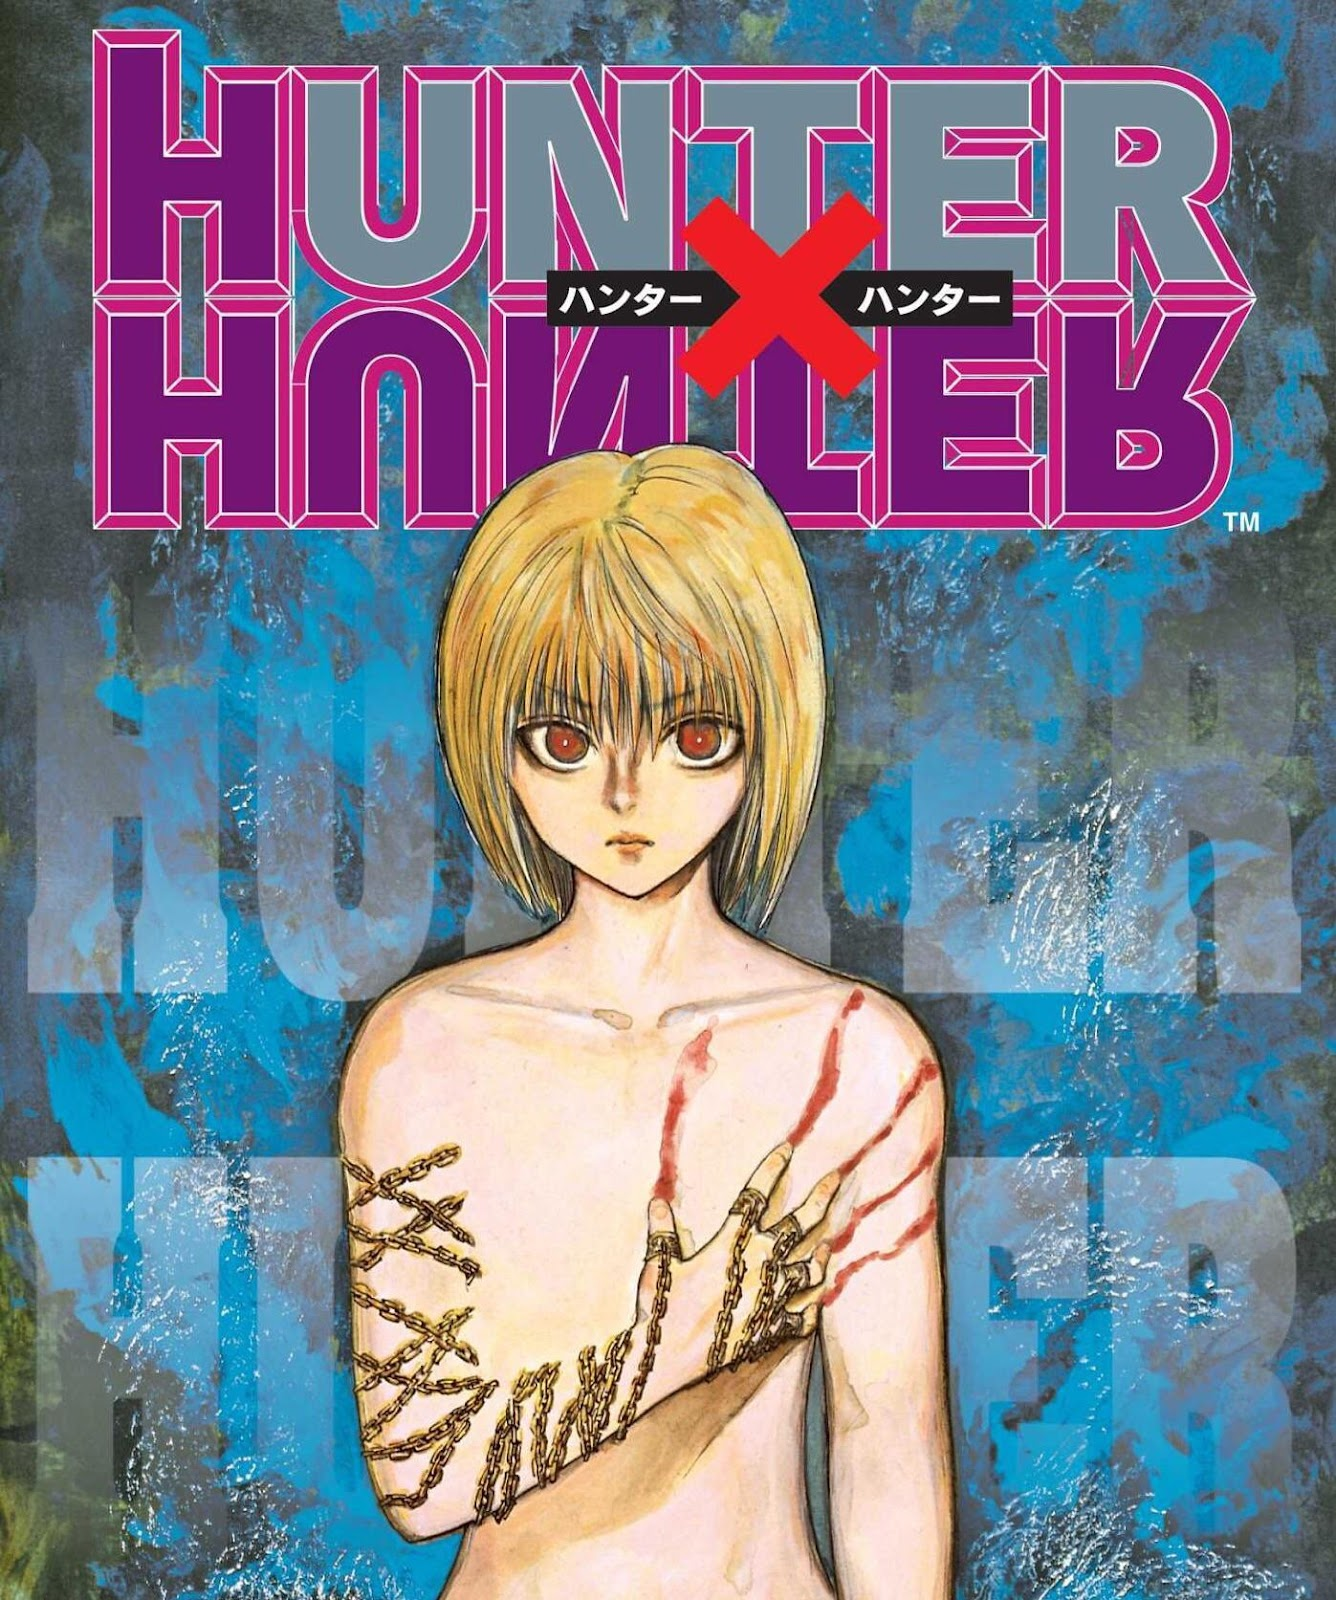 One of my favourite cover artworks from the manga! Kurapika looks so cold  and so in pain at the same time: HunterXHunter